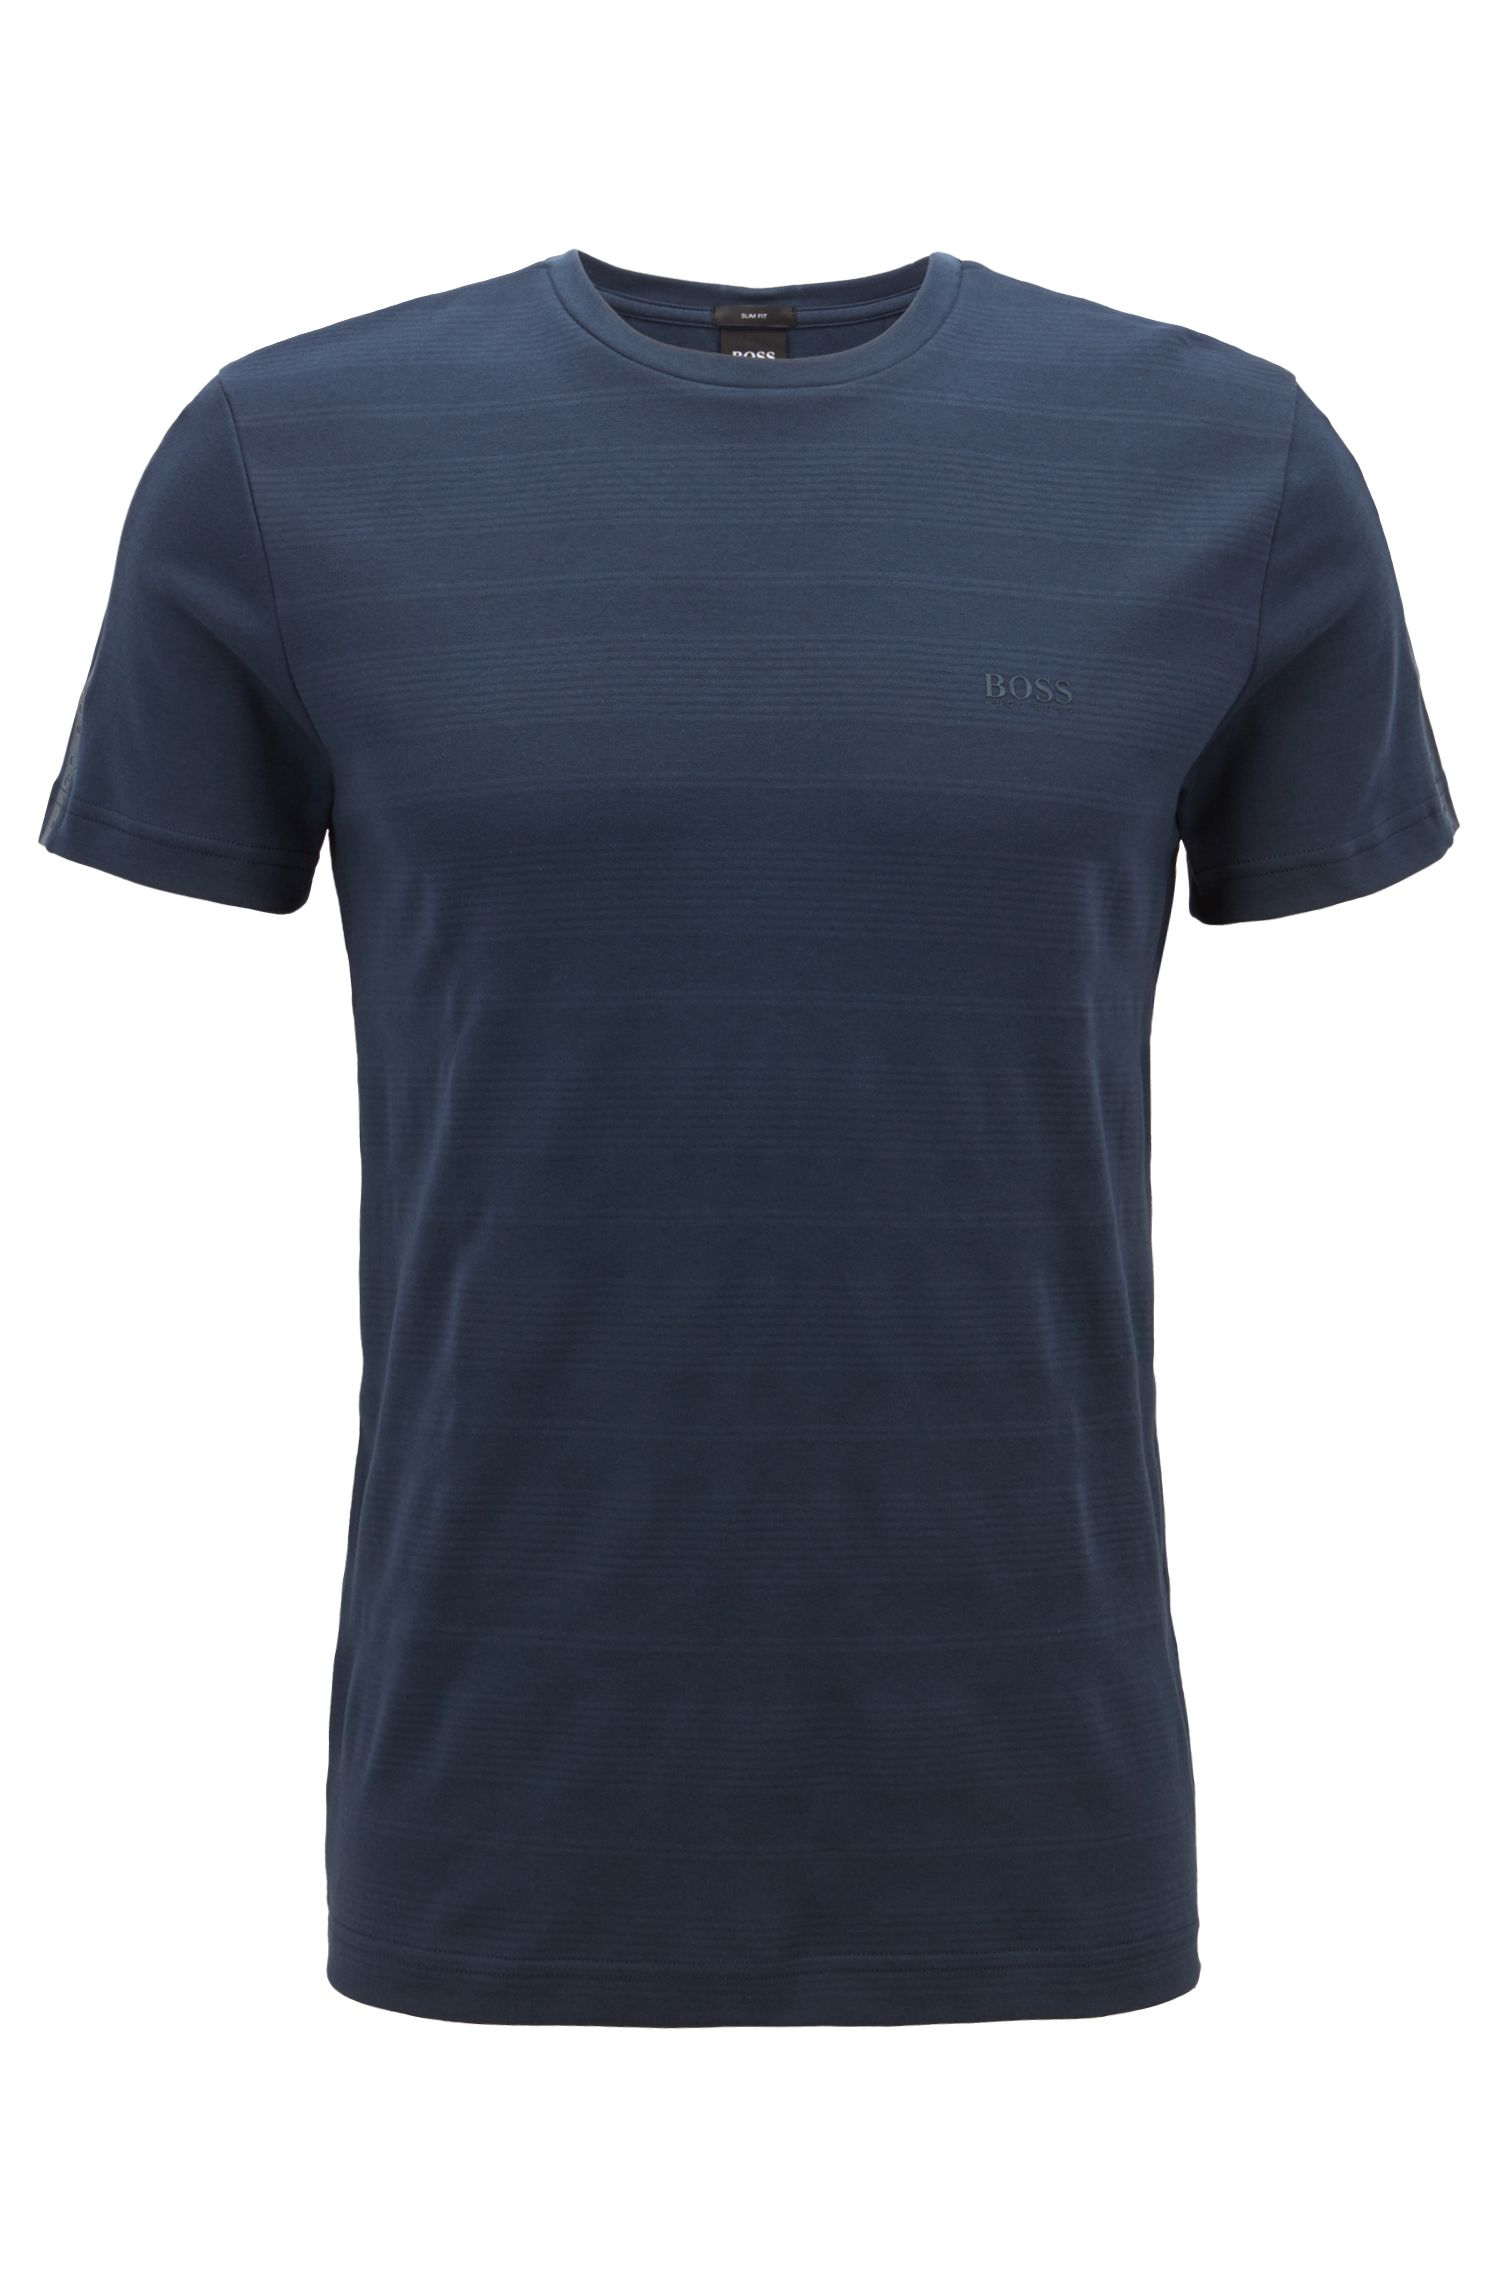 Slim-fit T-shirt in cotton with logo-tape sleeves, Dark Blue